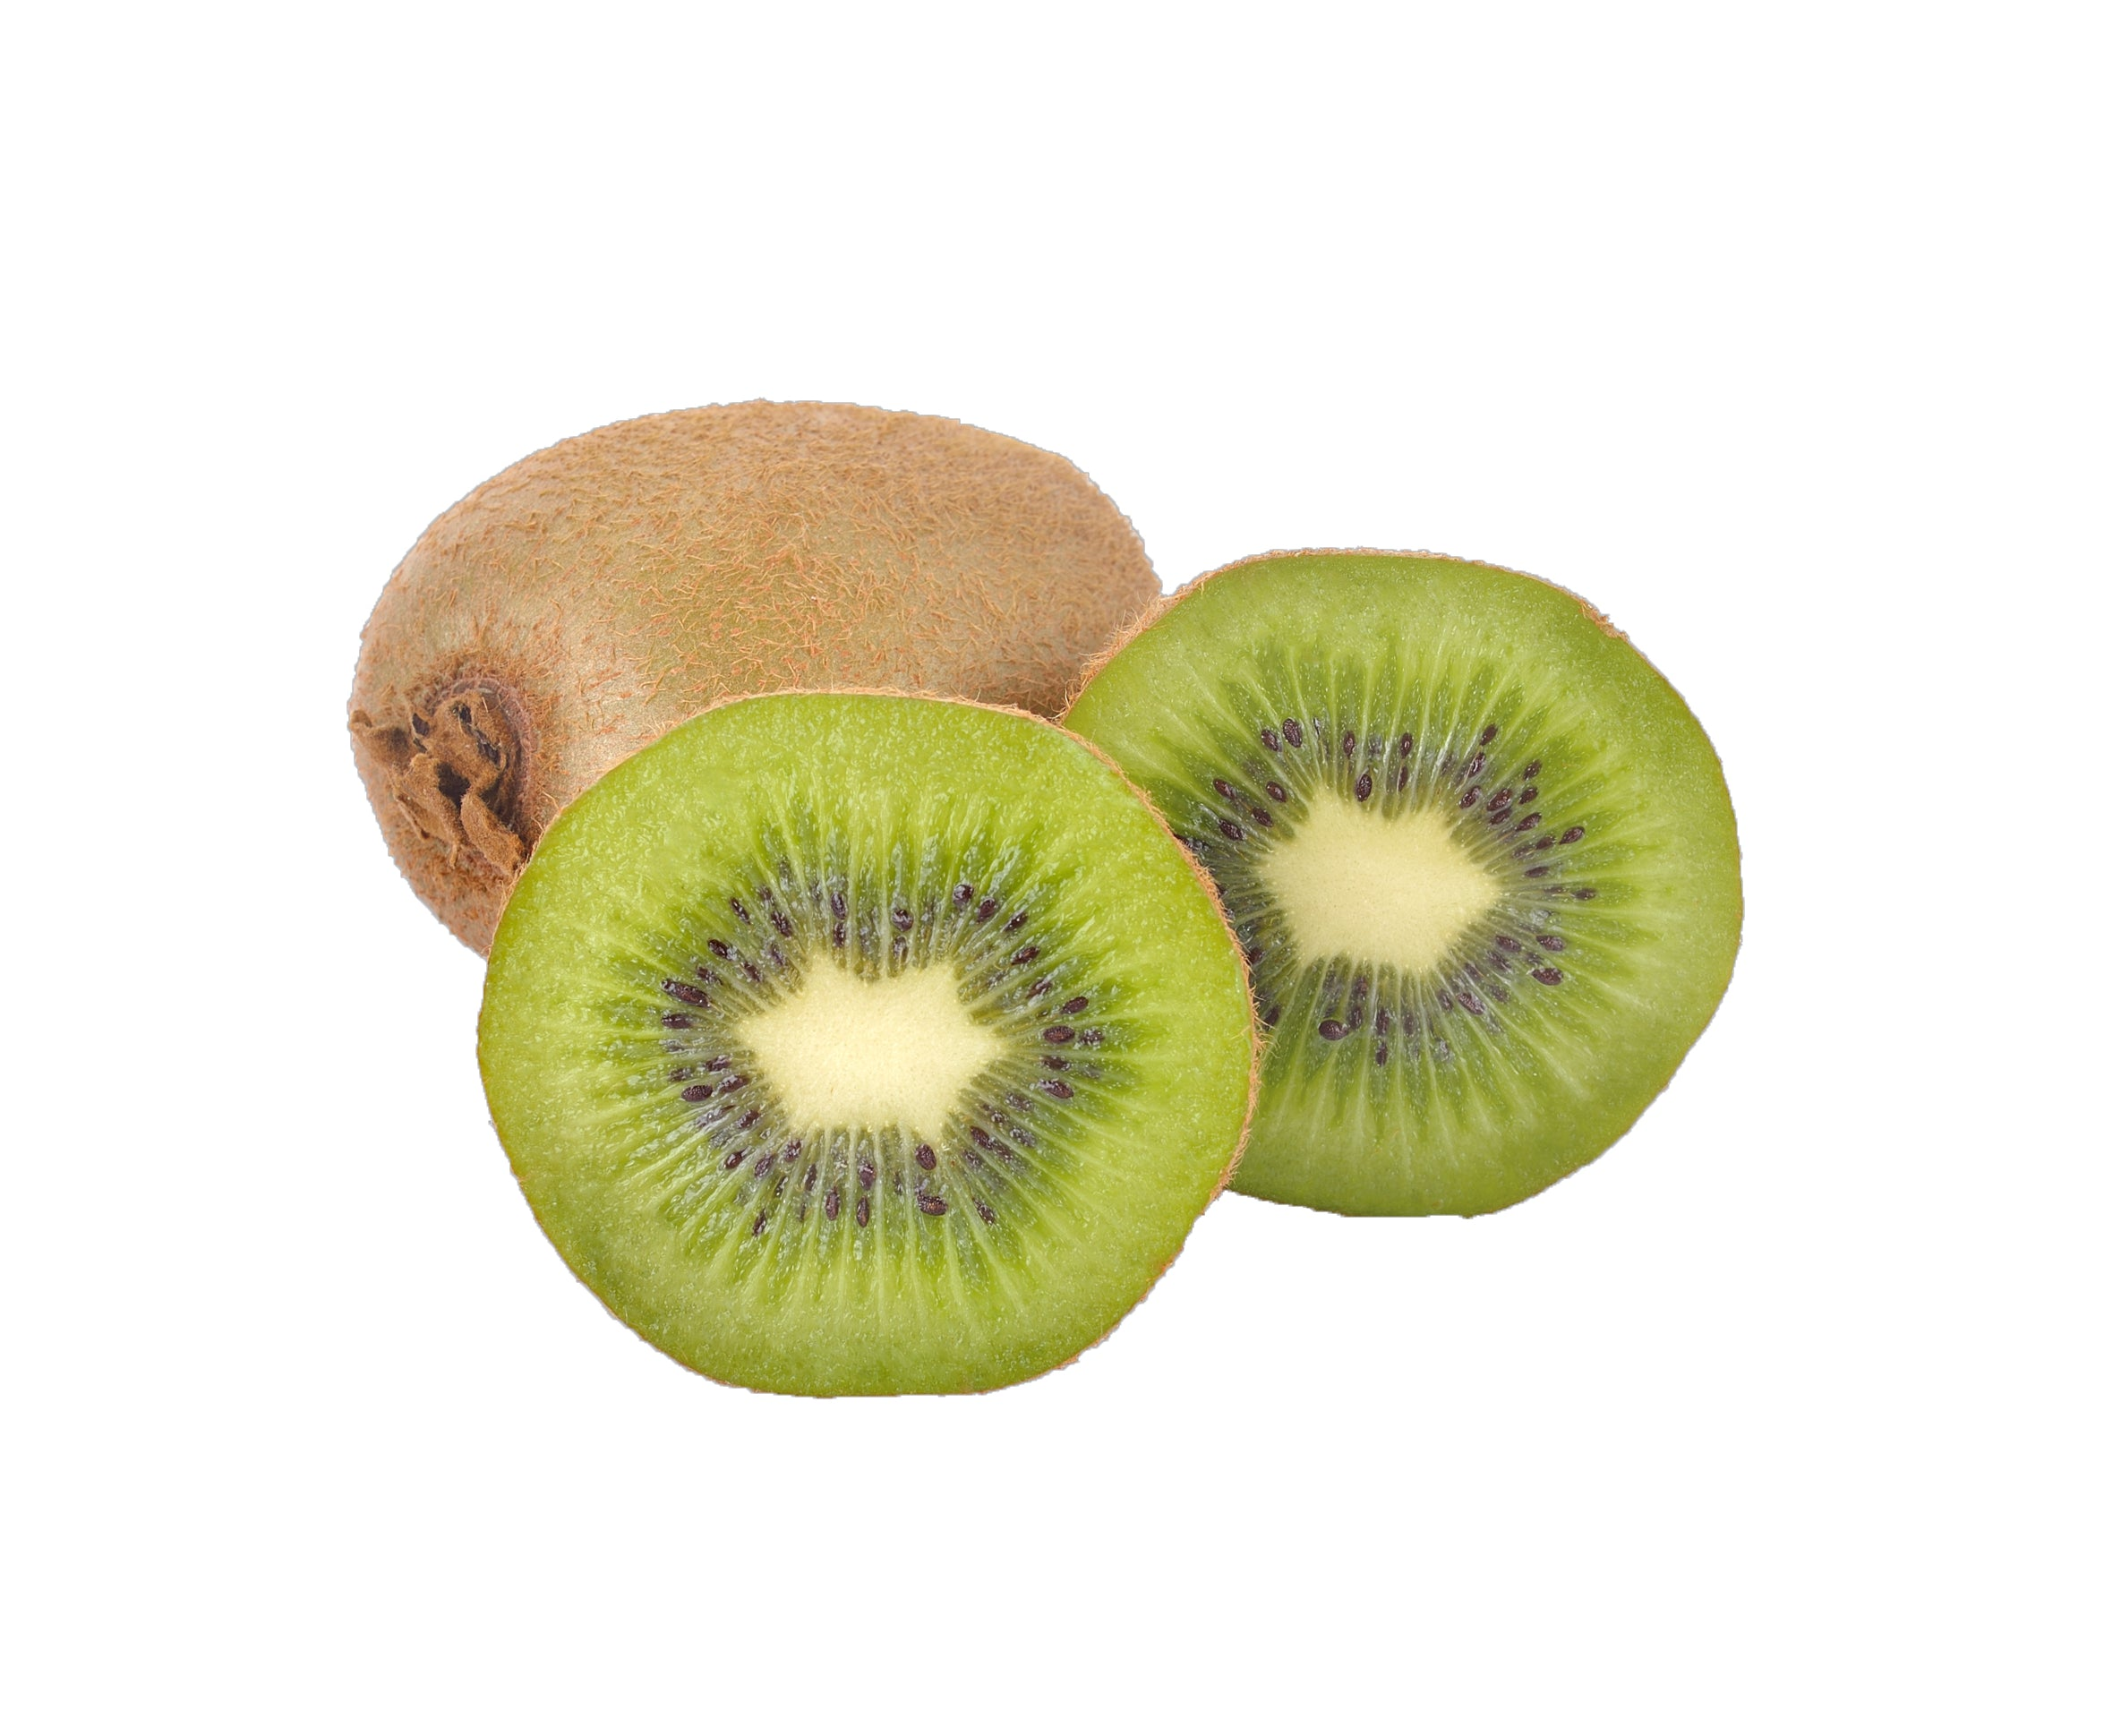 uplift food kiwi fruit prebiotic soluble fiber high fiber cookies gut health